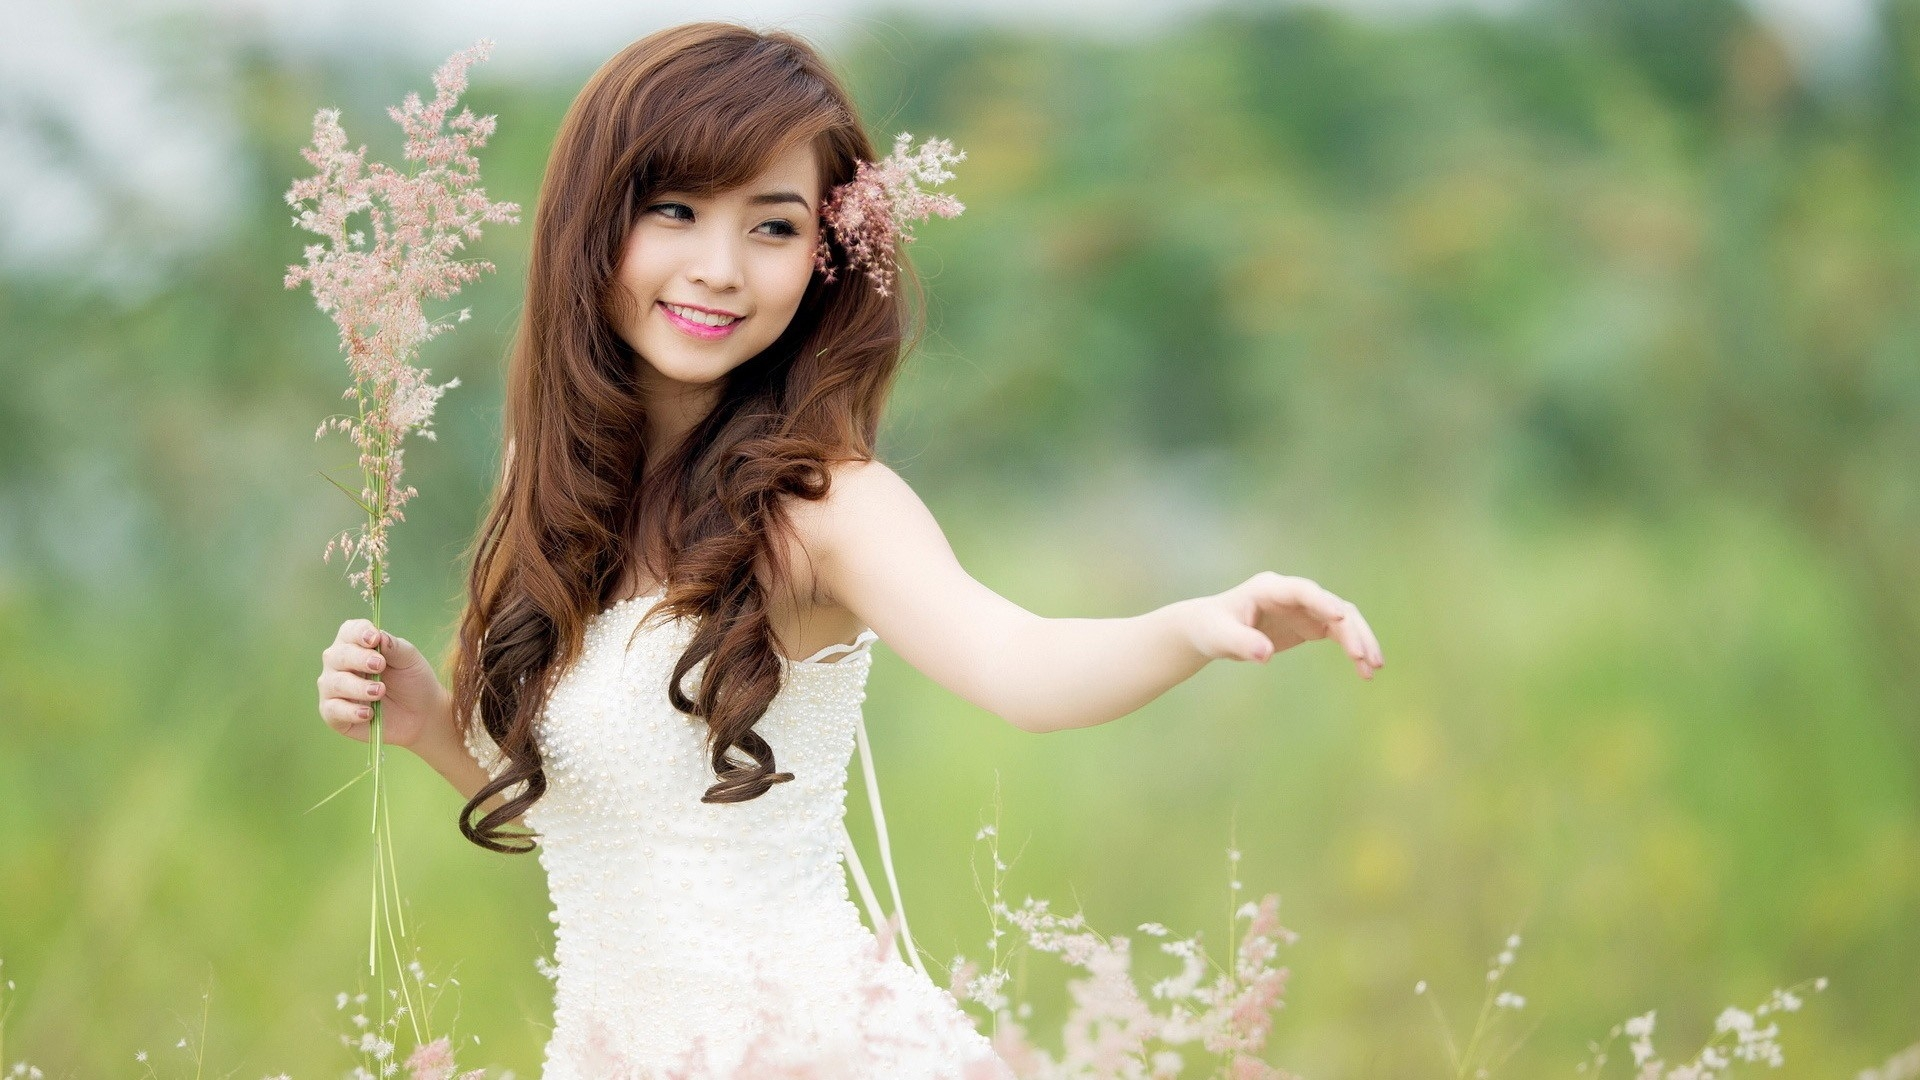 Cool Stylish Girl Hd Wallpaper Asian Girl Wallpapers Hd Backgrounds Images Pics Photos